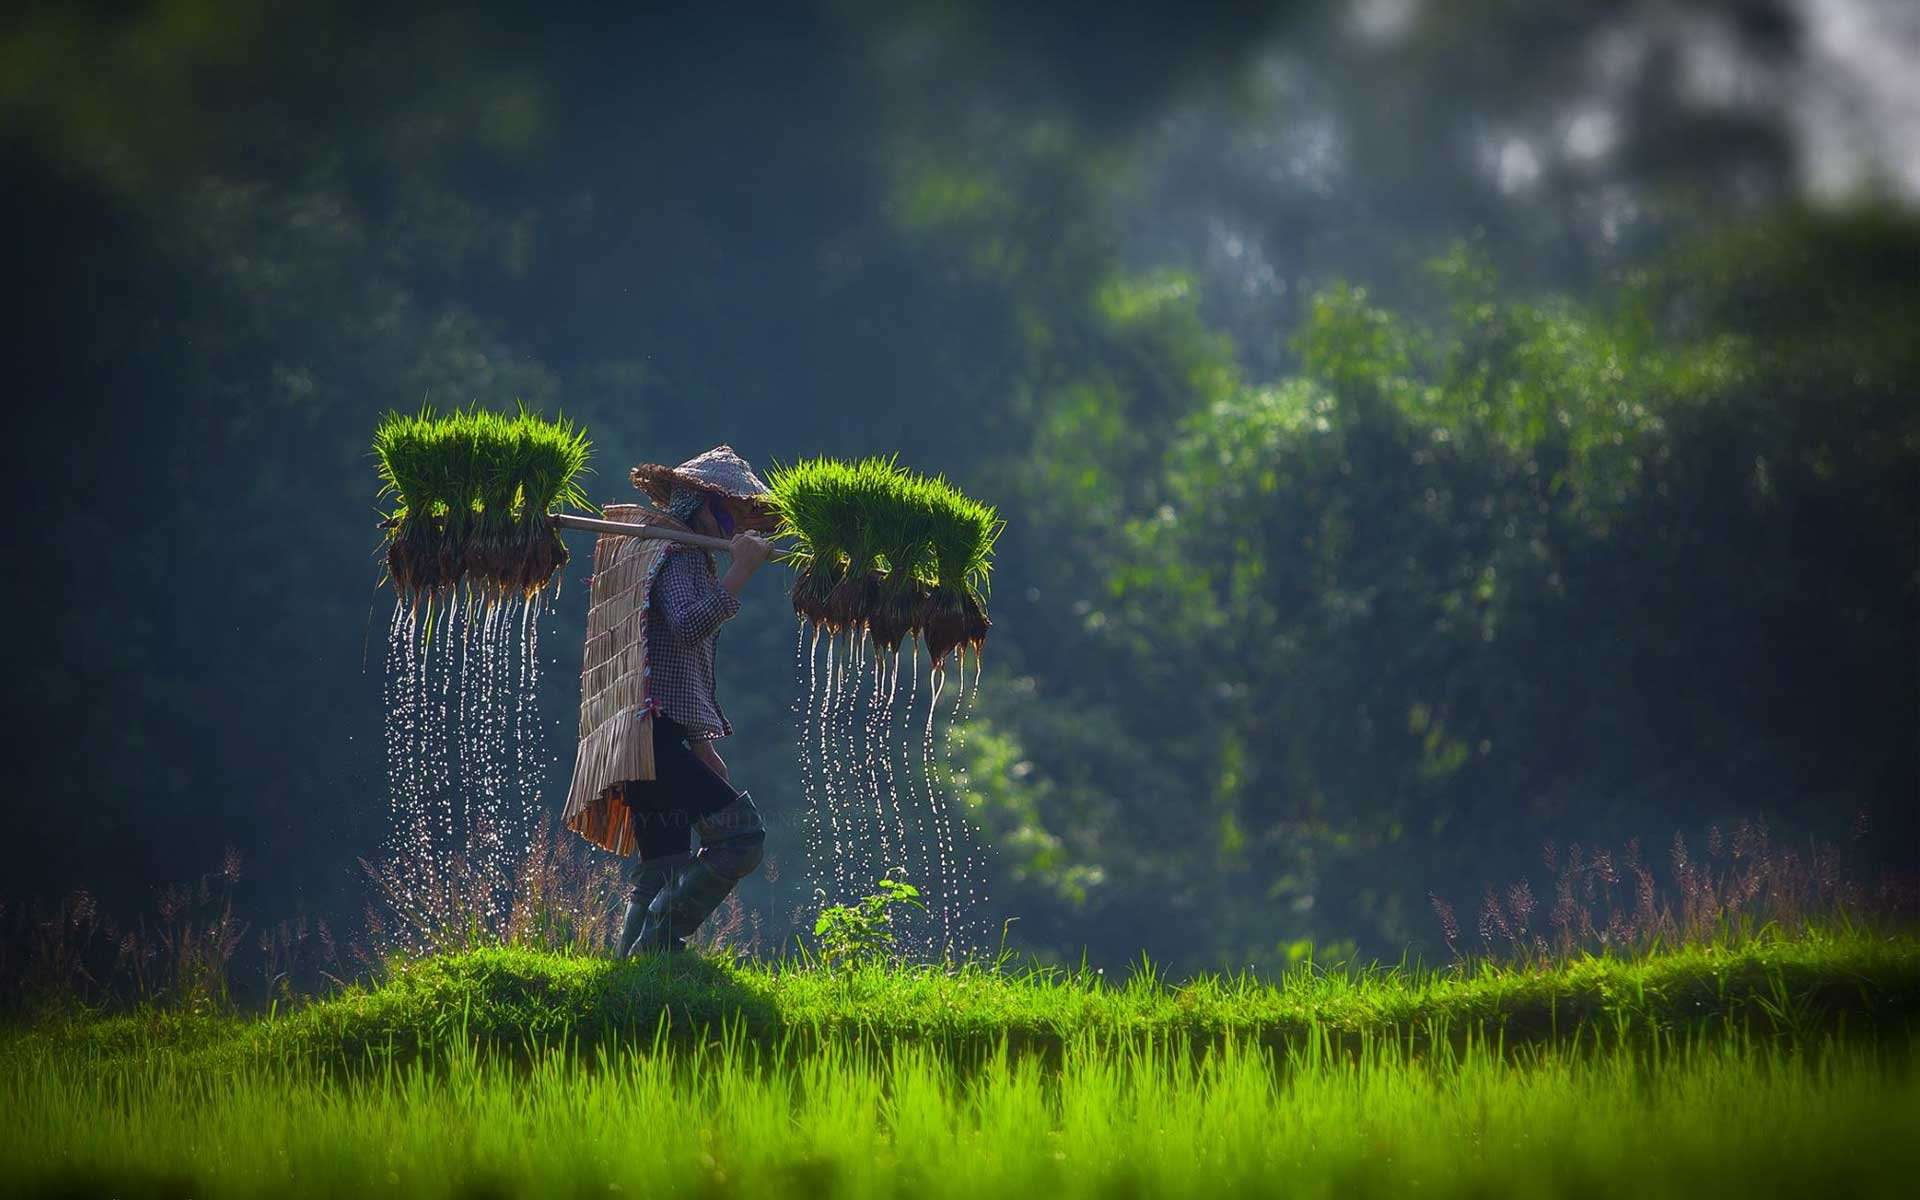 Countryside of Vietnam - Unforgettable Childhood